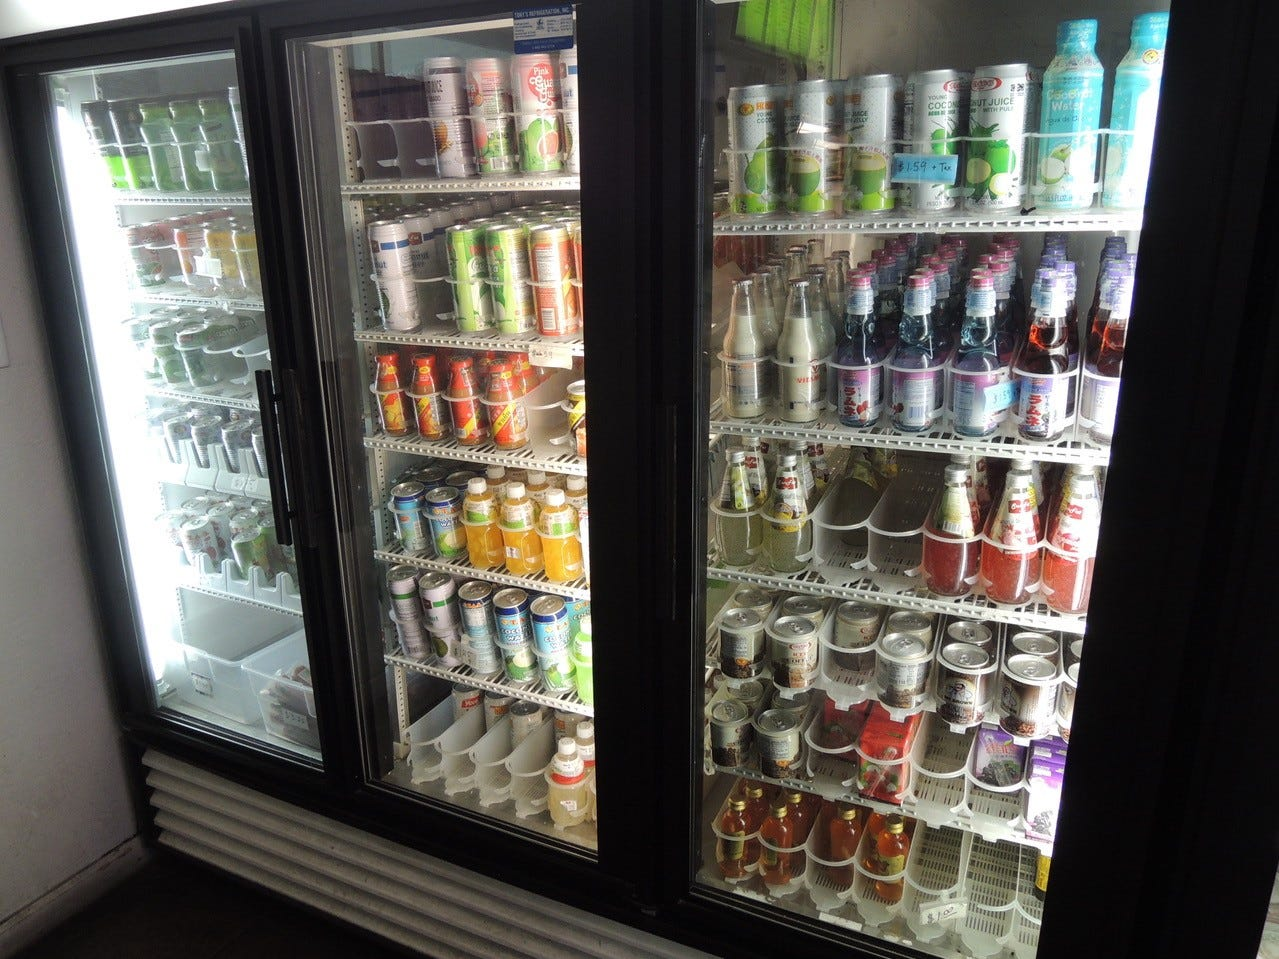 The refrigerated case offers a range of colorful and exotic beverages.